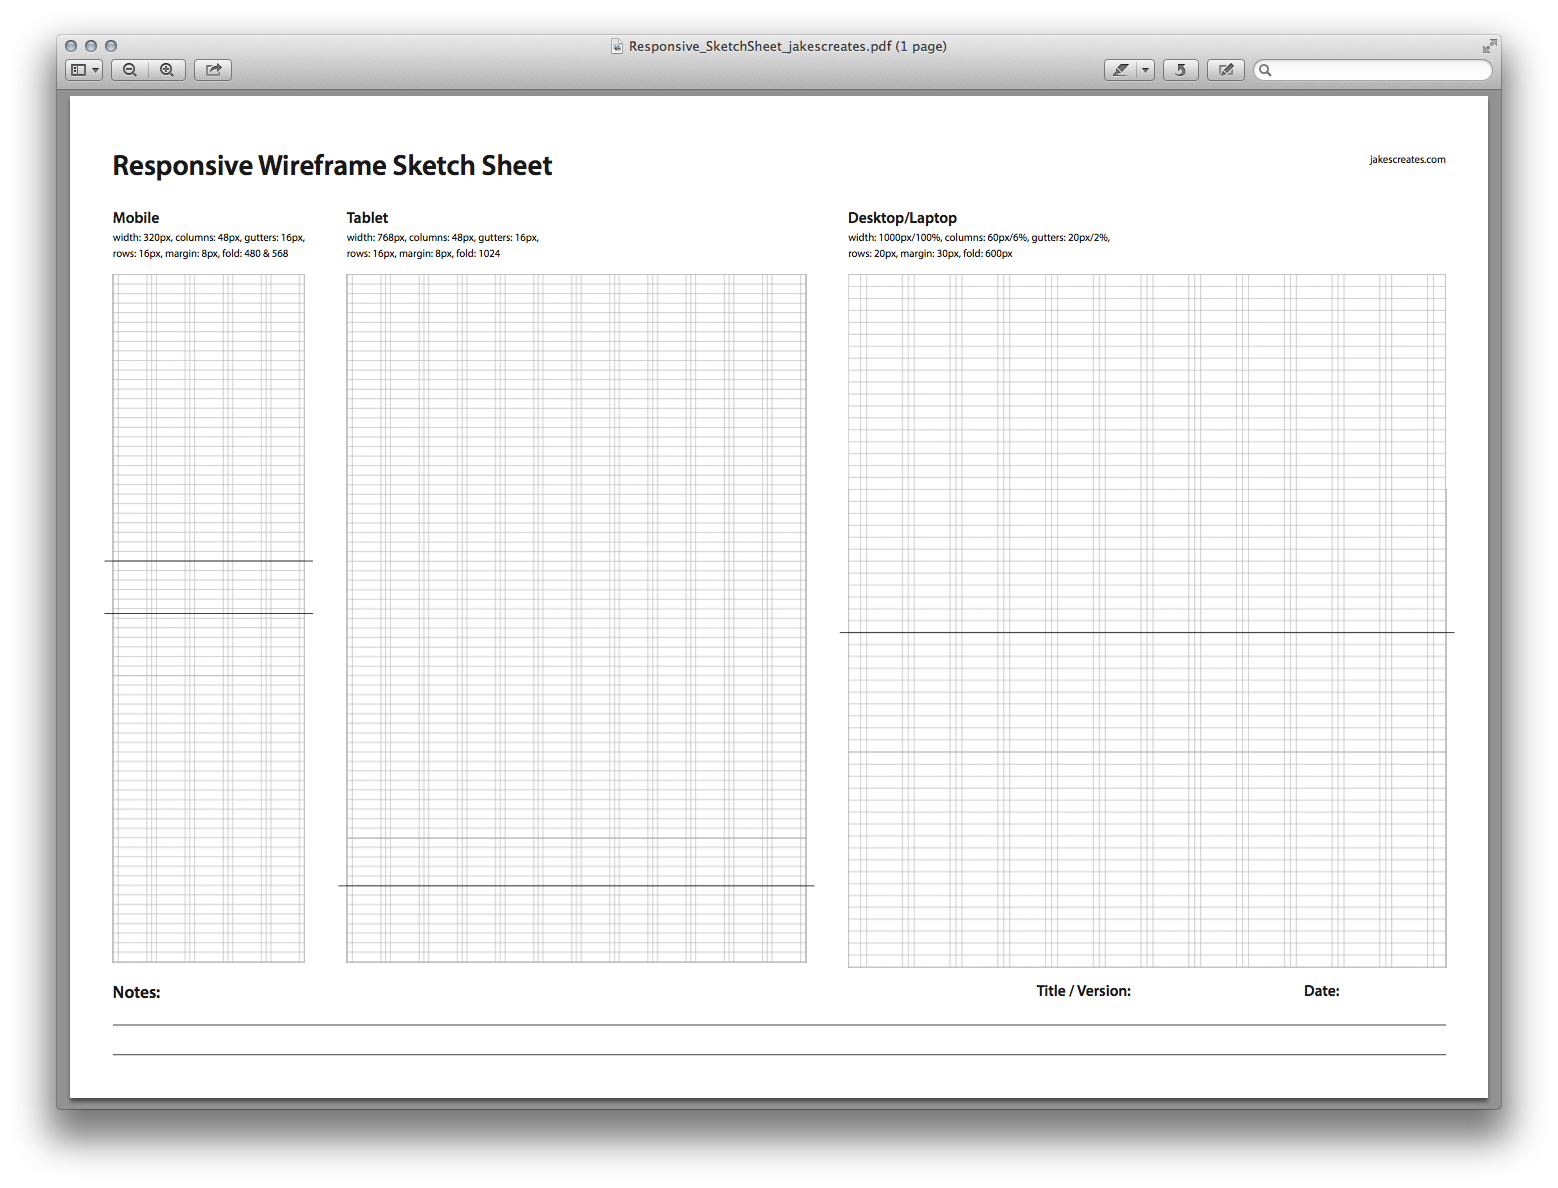 Responsive Wireframe Sketch Sheet By David Jakes On Dribbble